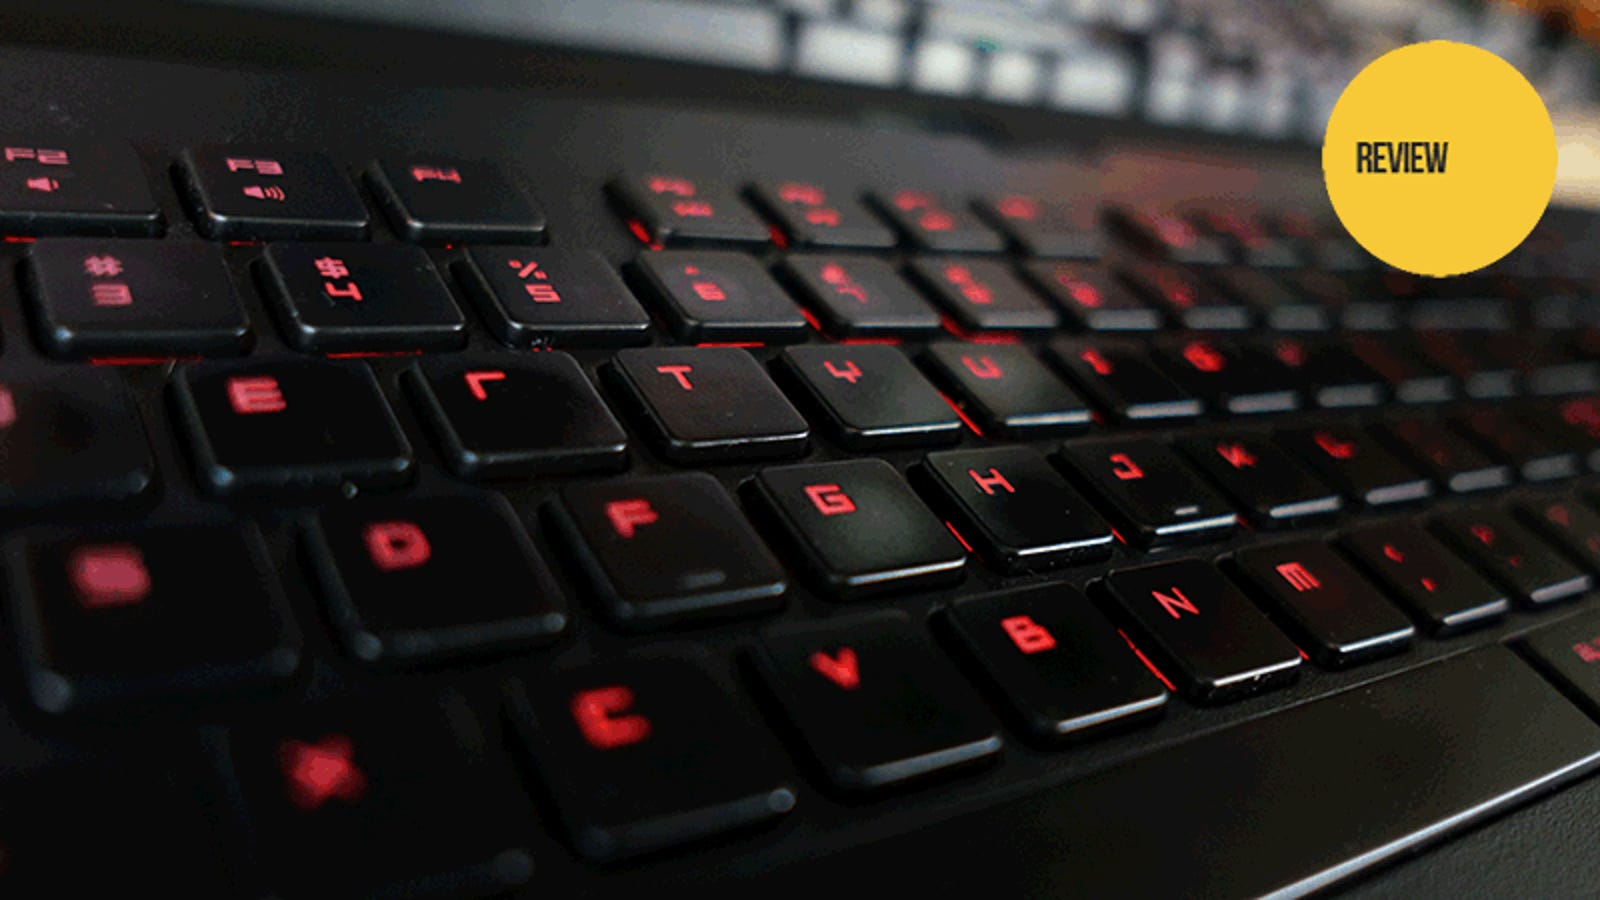 To Click Or Not To Click? The Gaming Keyboard Question